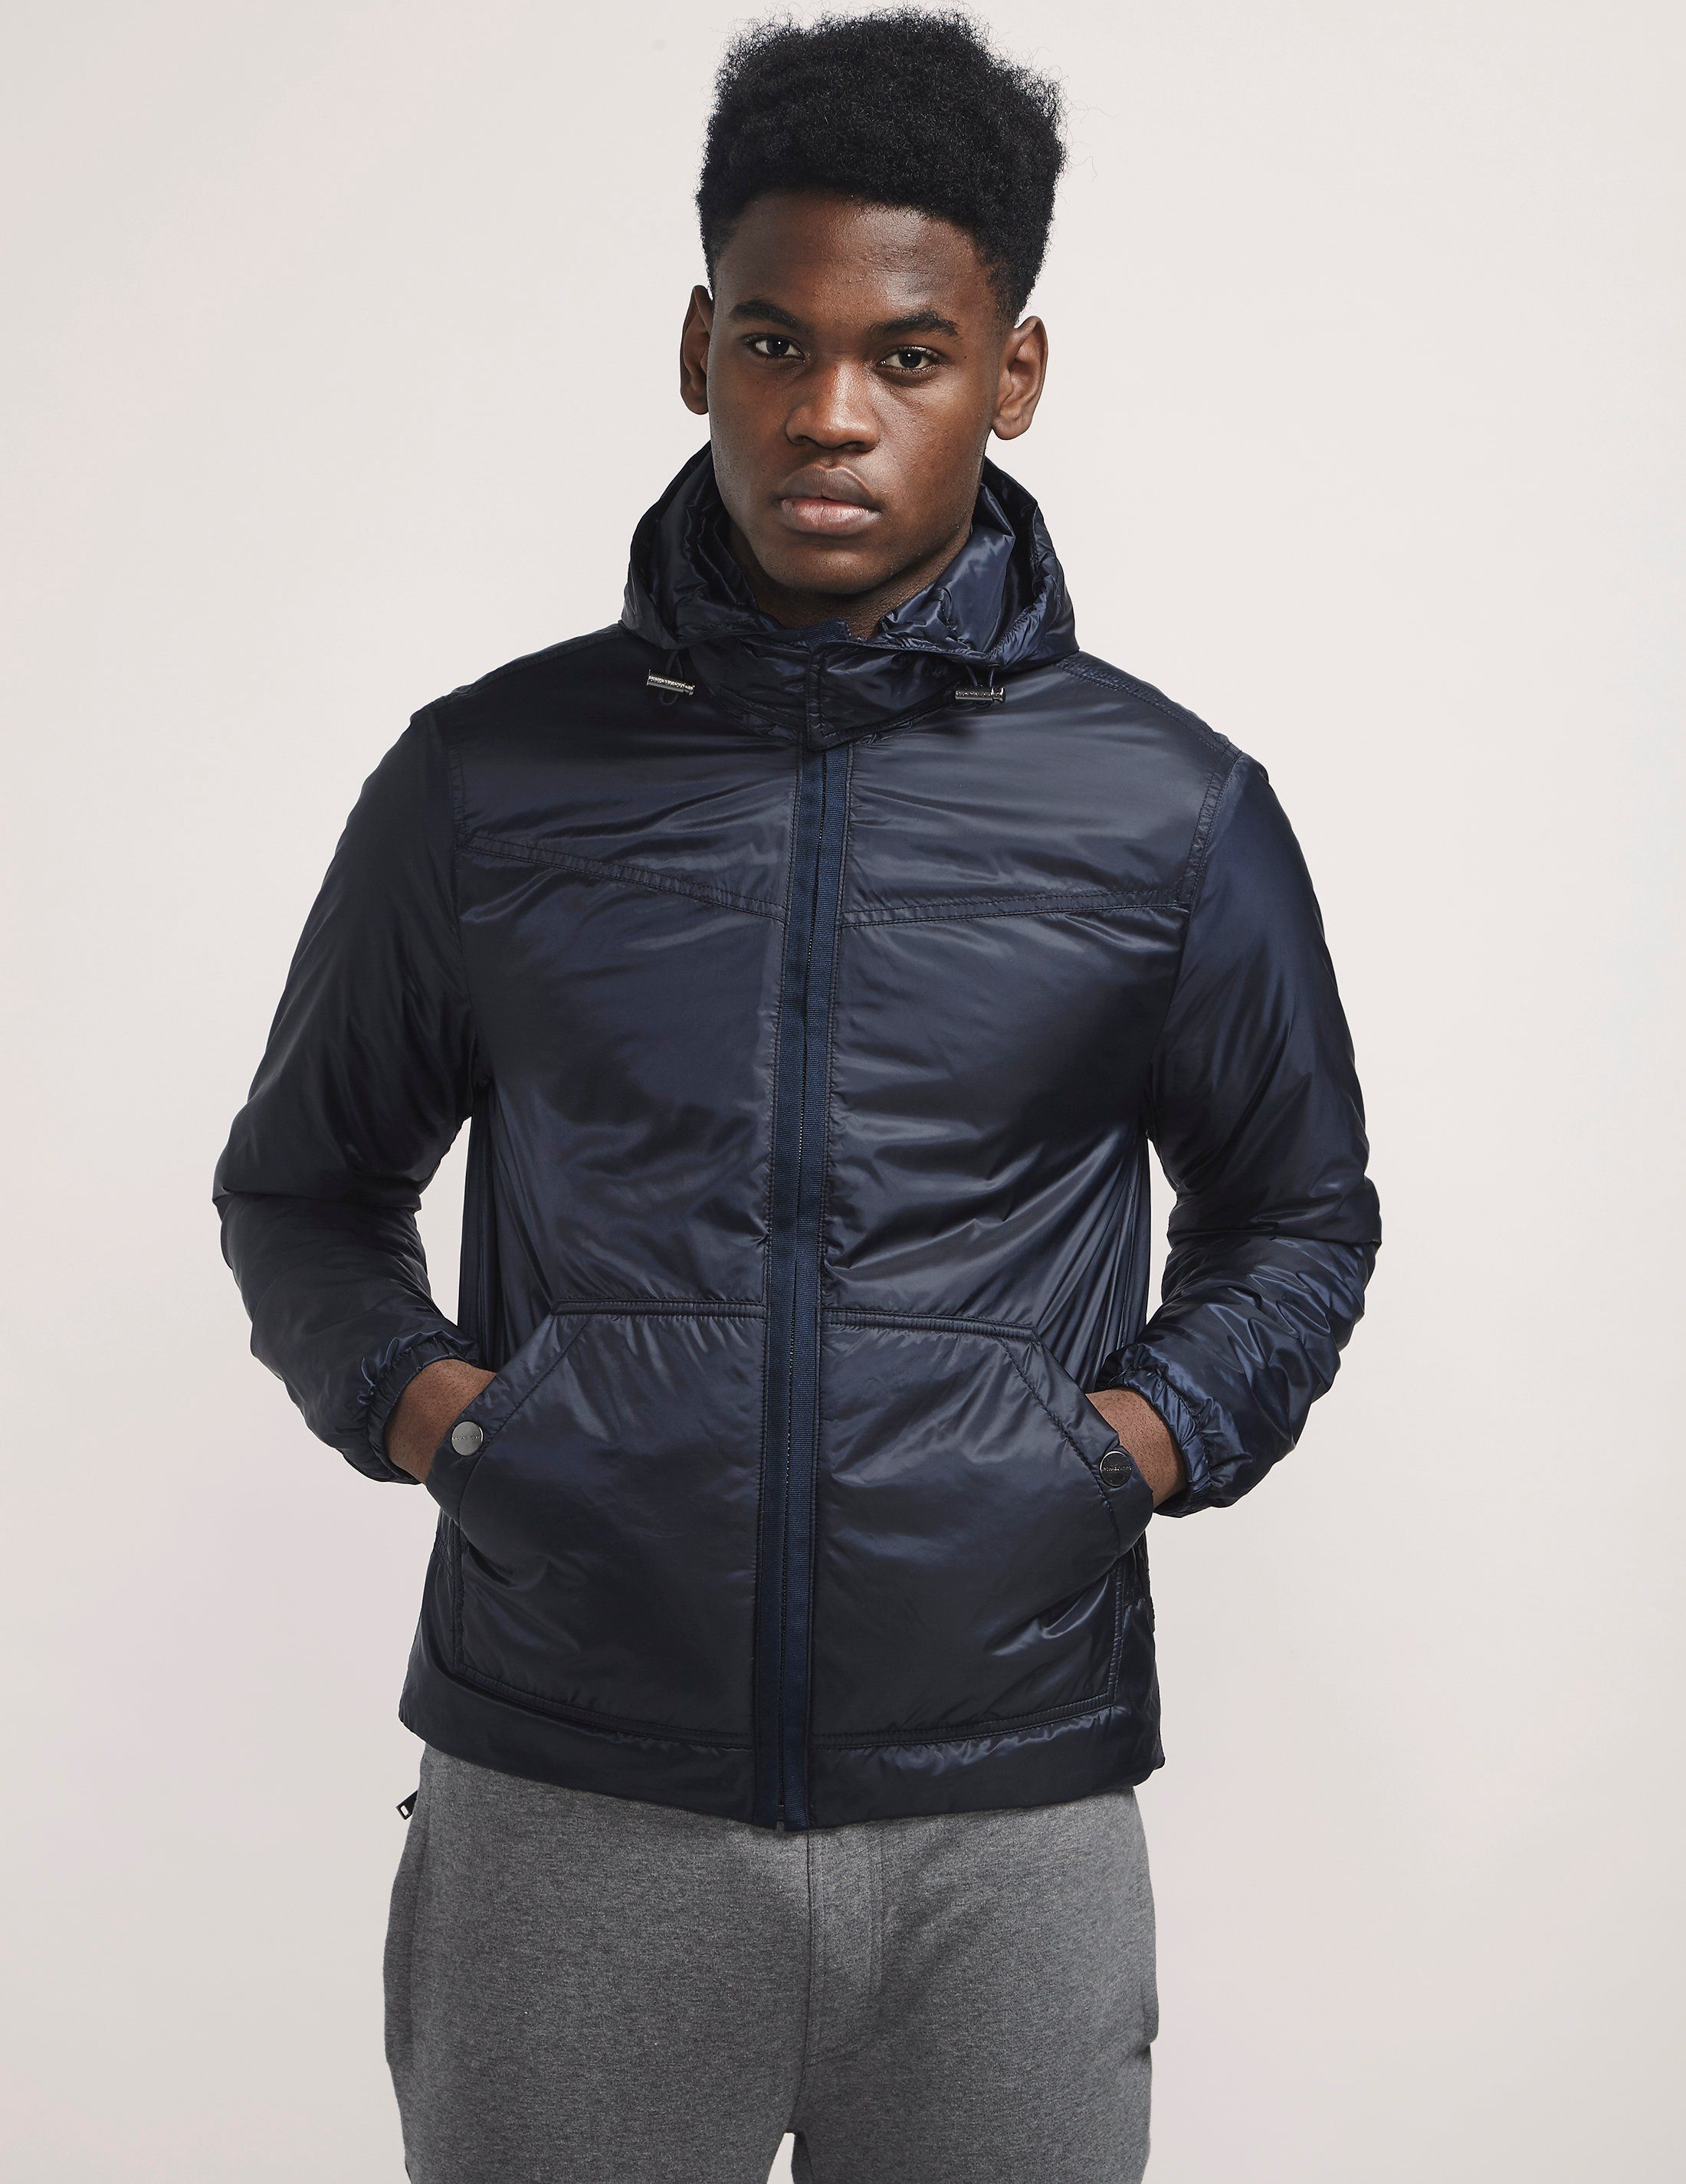 Michael Kors Primaloft Hooded Jacket